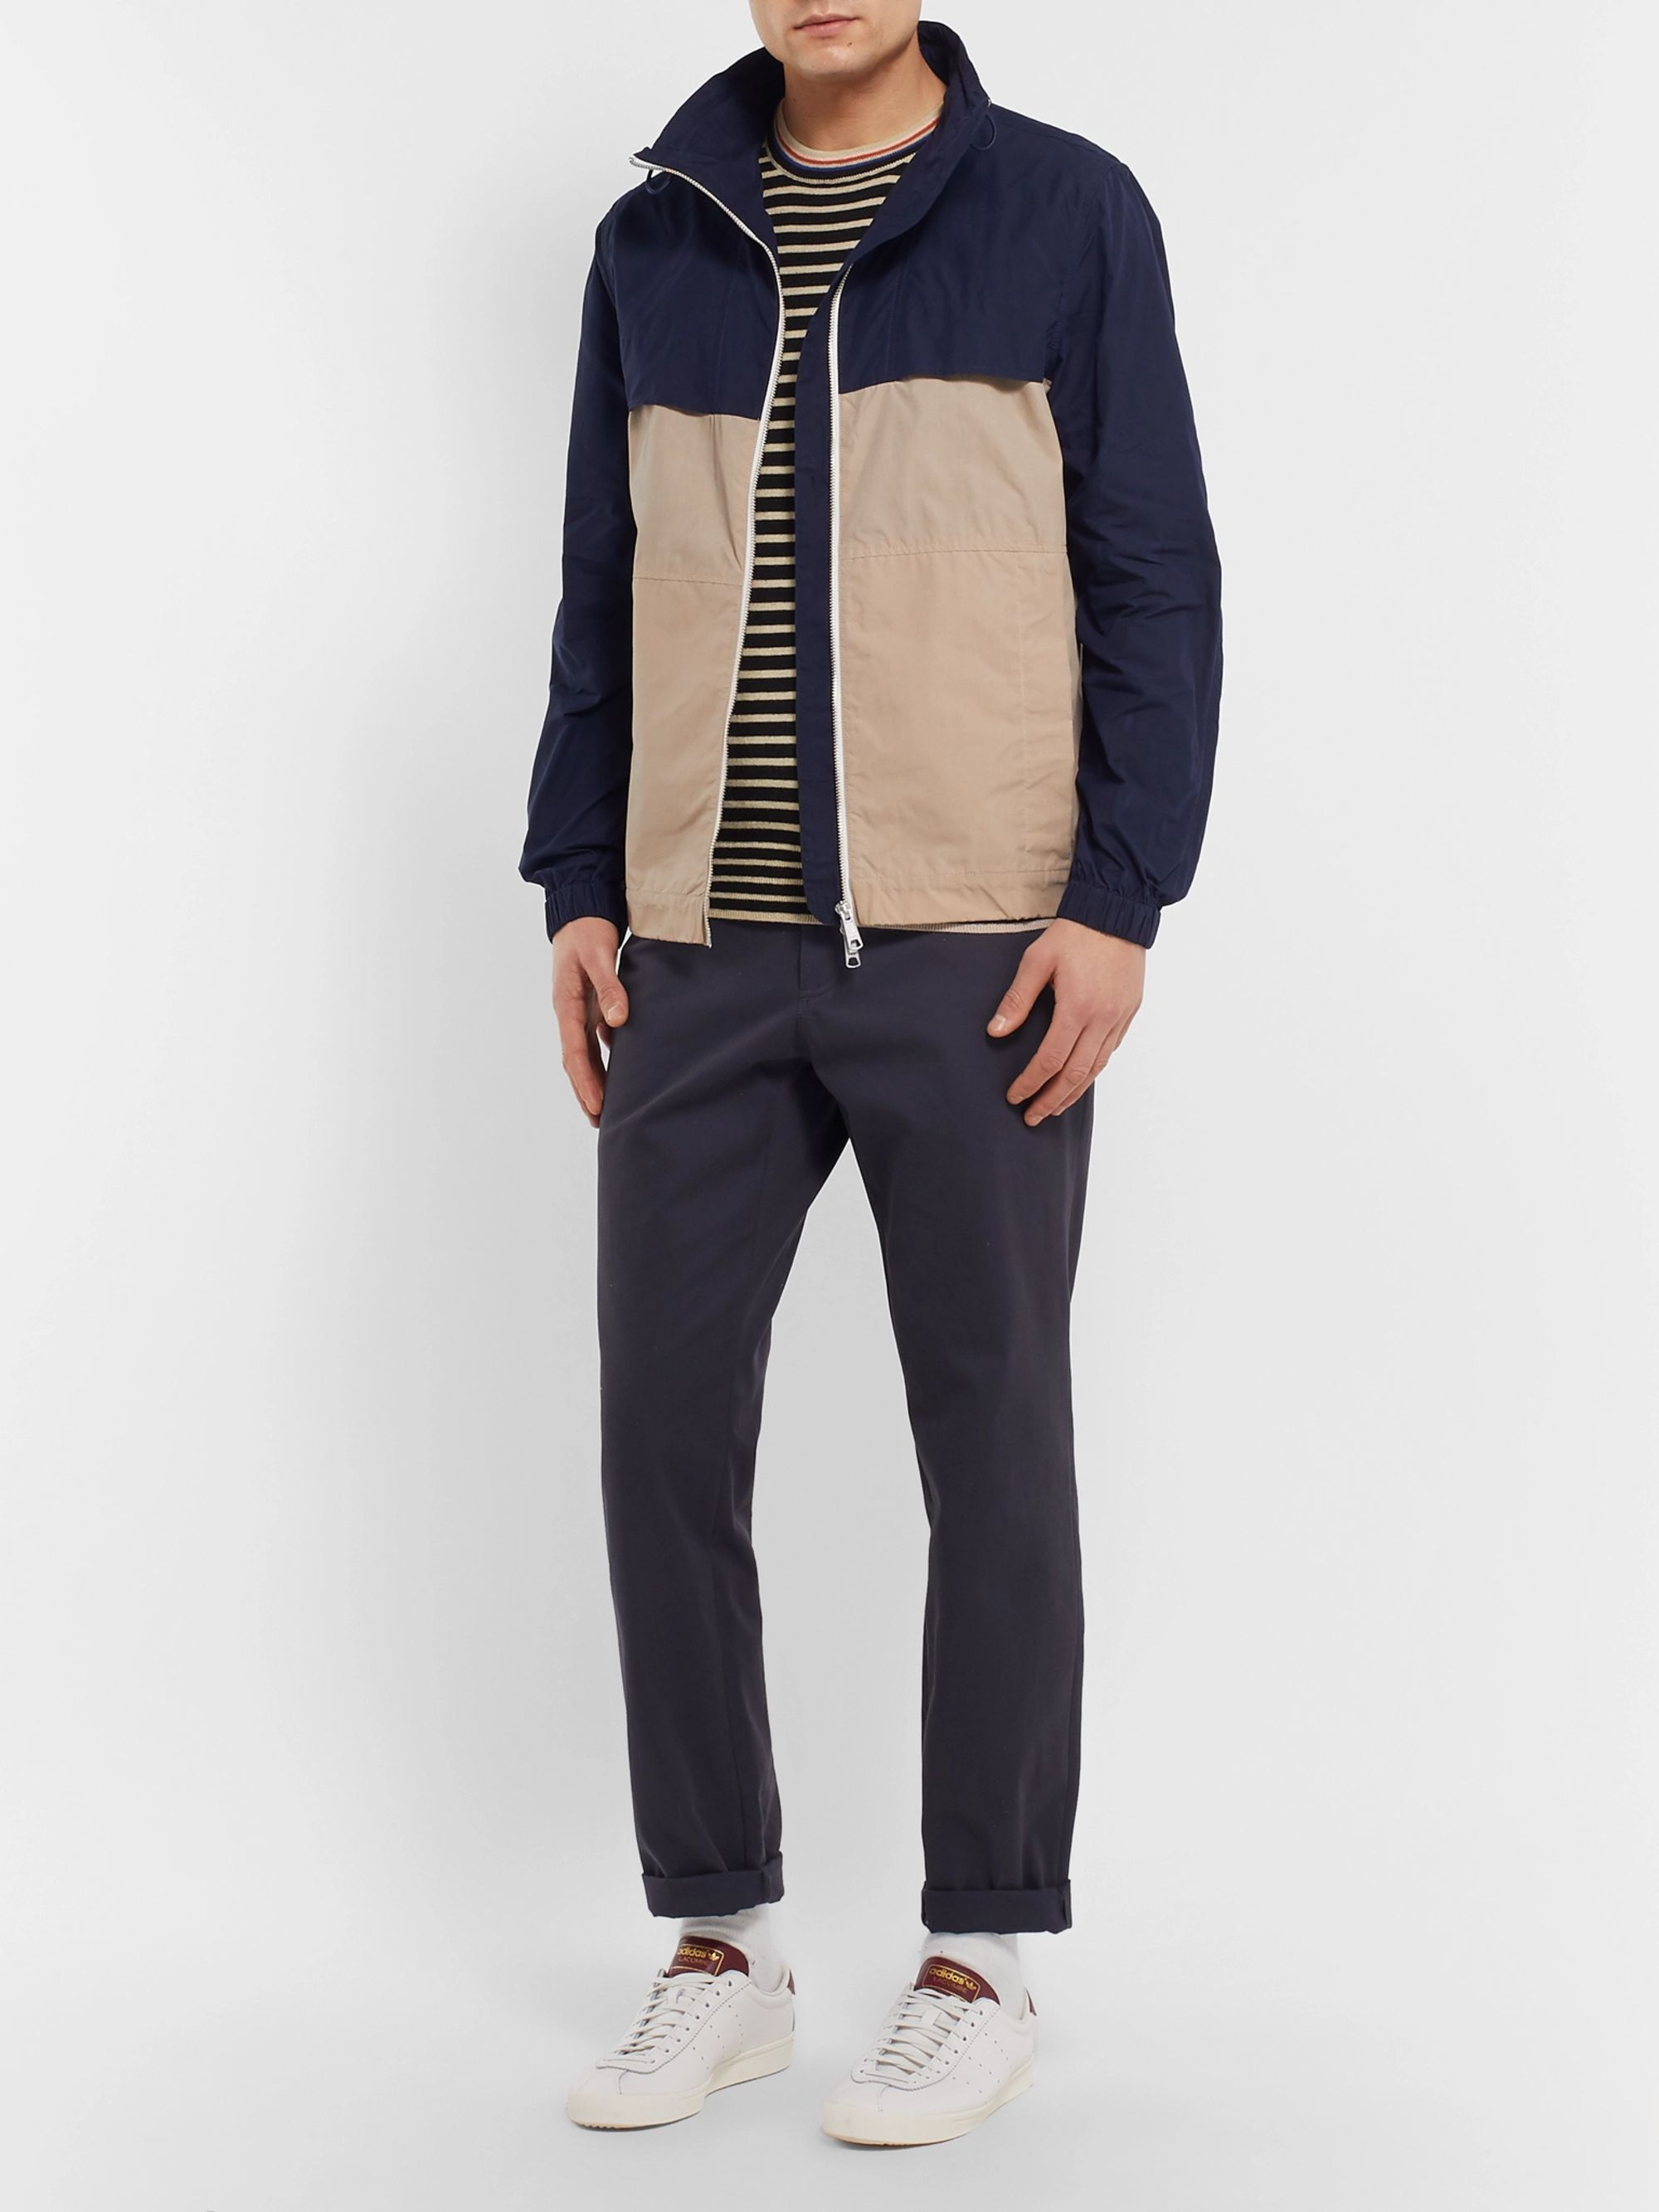 Bellerose Striped Cotton and Wool-Blend Sweater